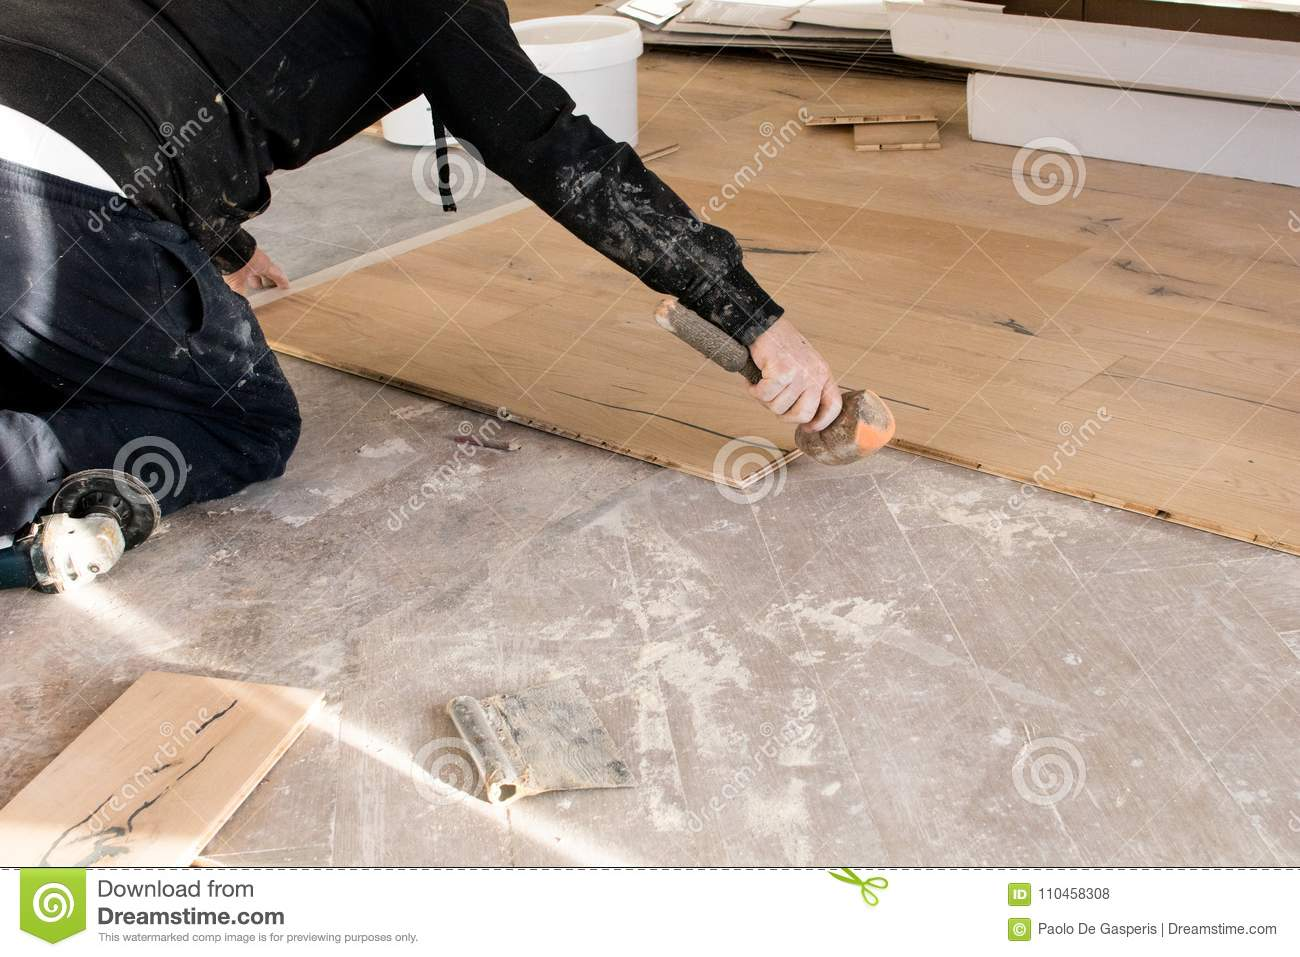 Renovation De Parquet Renovation Of An Apartment Skilled Worker Uses A Plastic Hammer